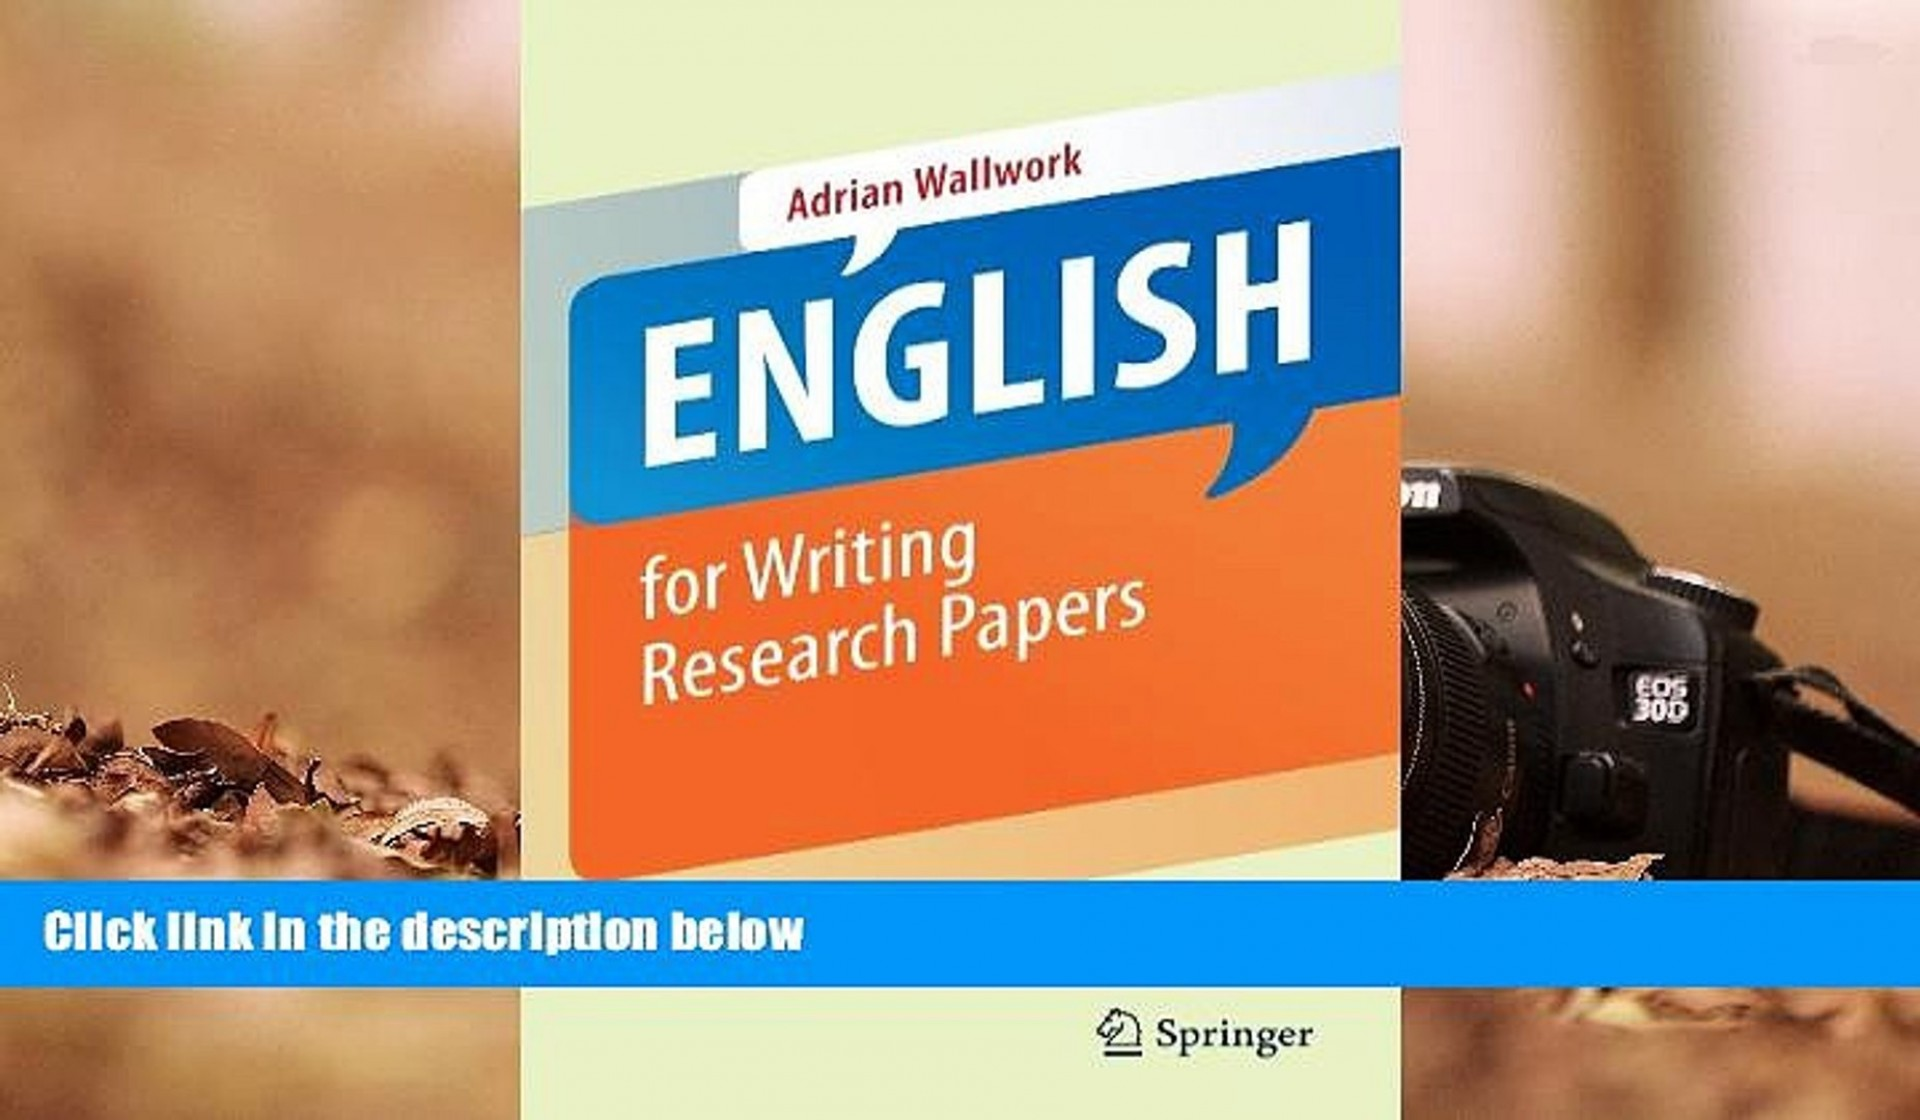 013 X1080 Jtf English For Writing Researchs Adrian Wallwork Pdf Marvelous Research Papers 2011 1920